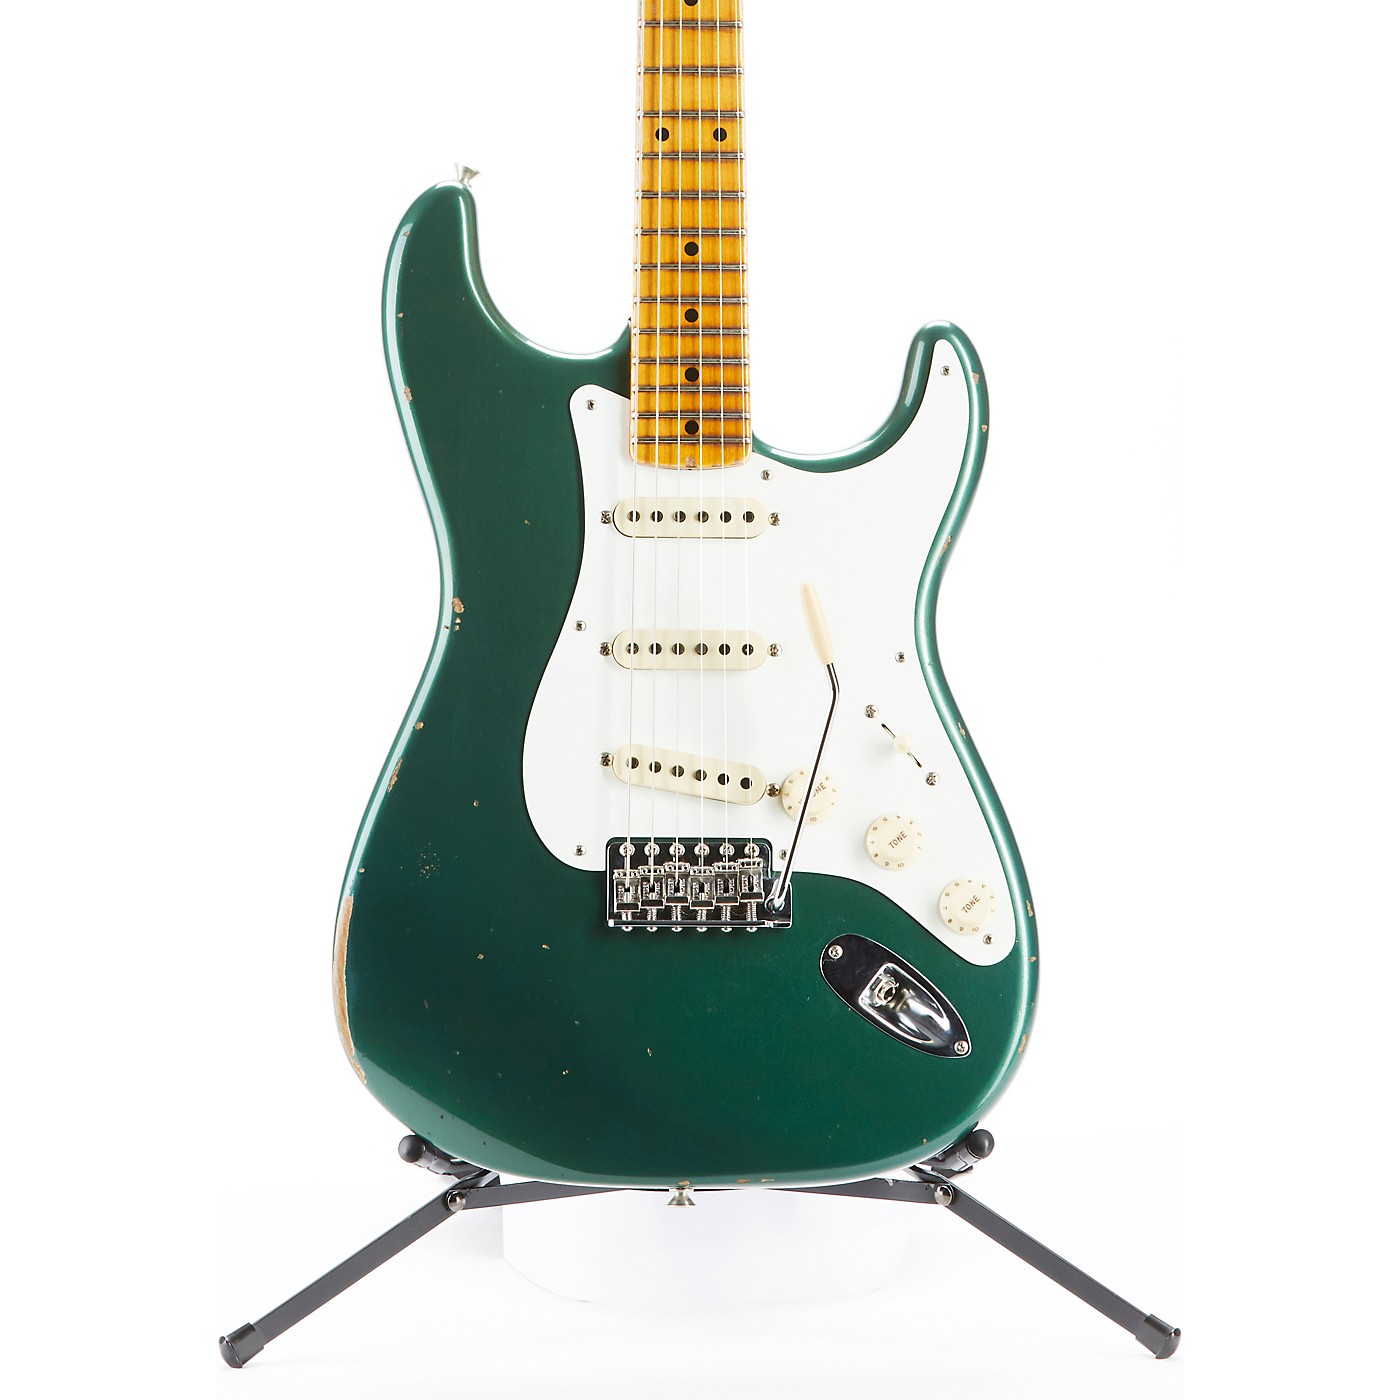 Fender Custom Shop 1956 Stratocaster Relic with Closet Classic Hardware Electric Guitar thumbnail